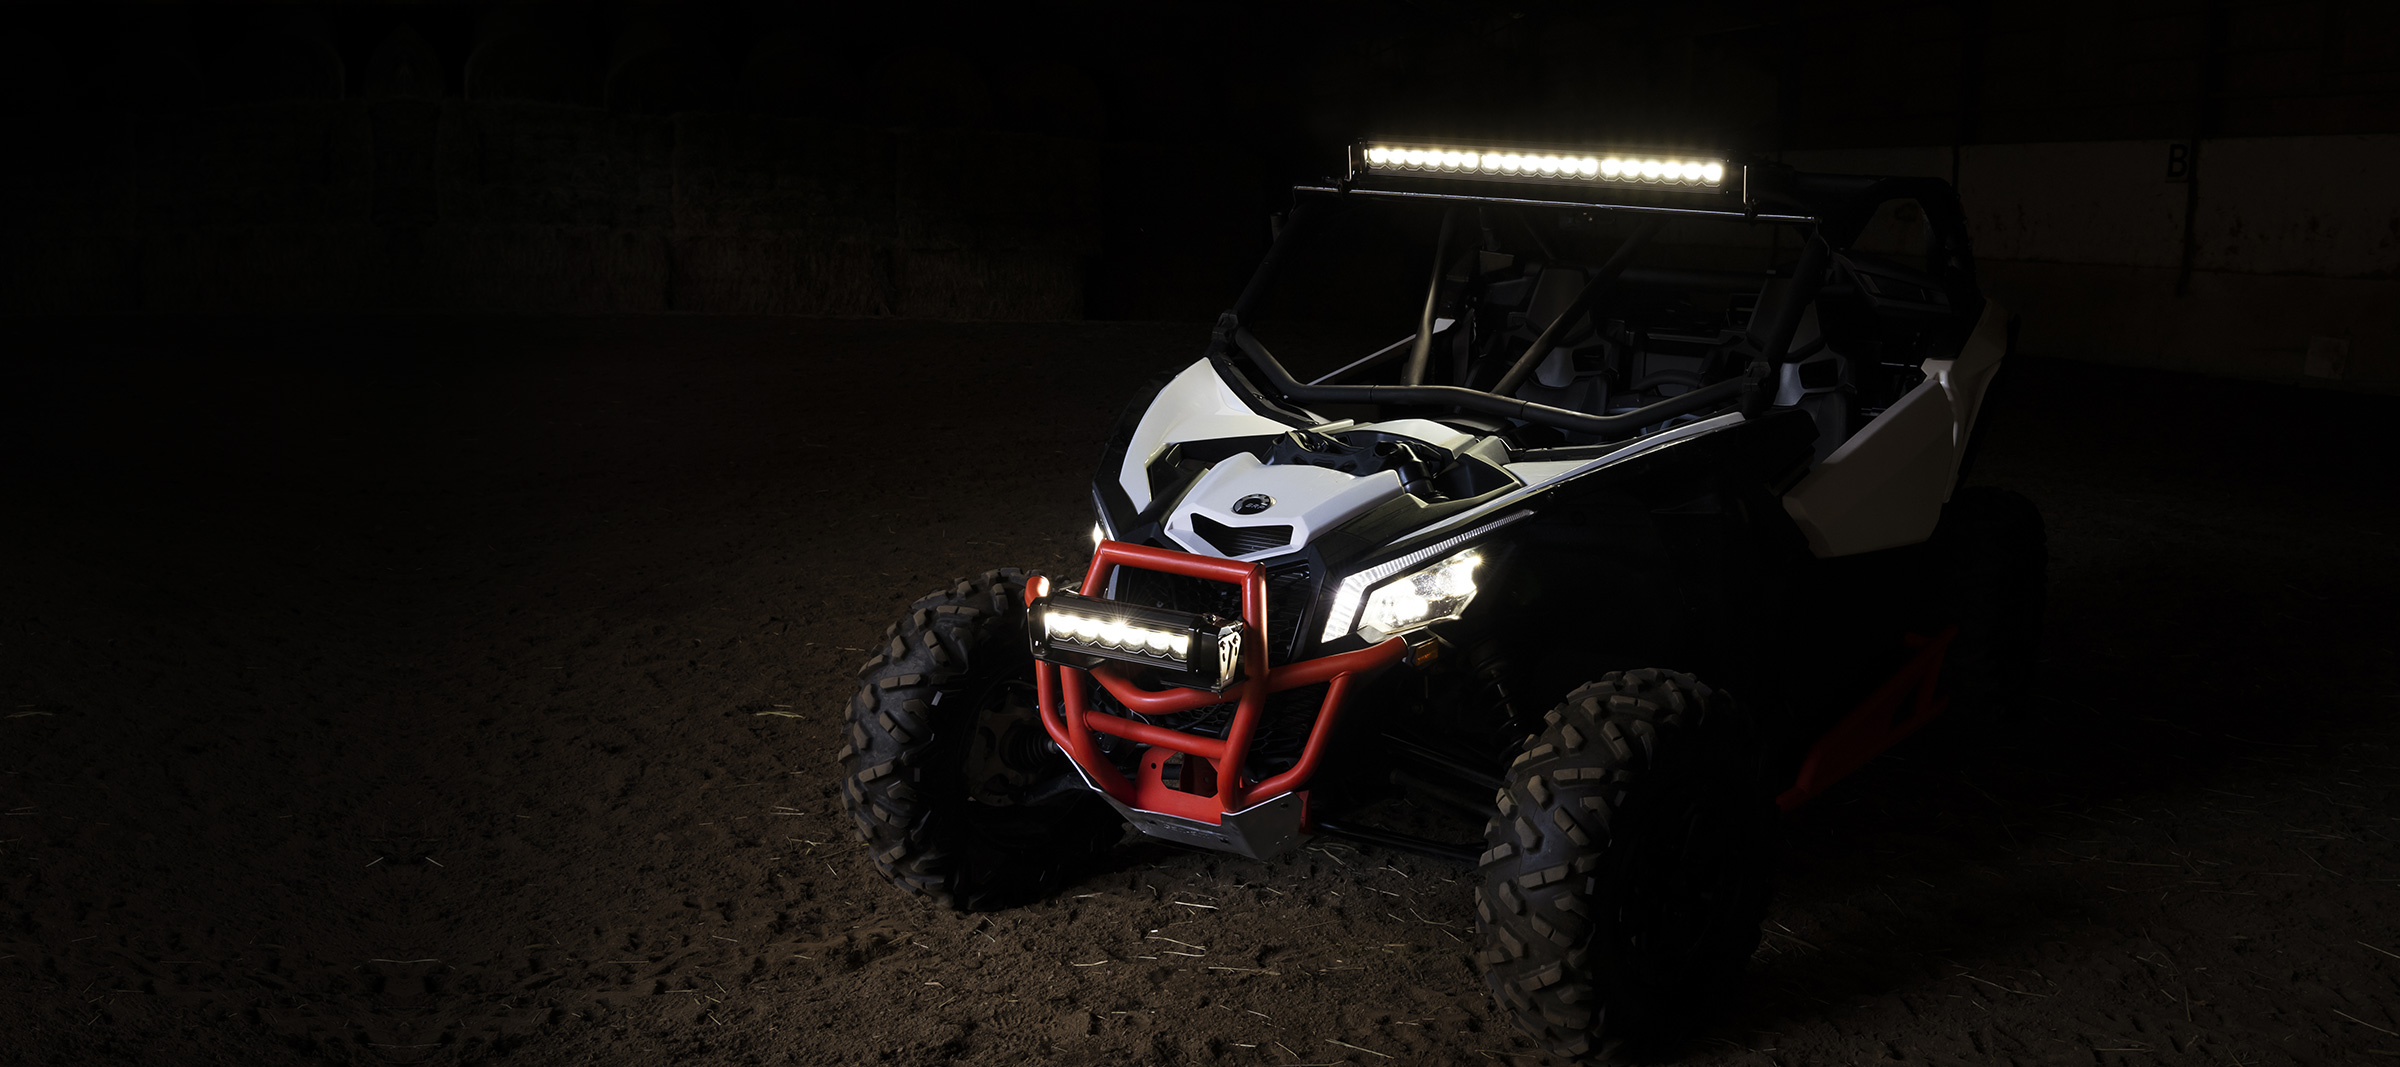 led light bar ATV side by side offroad best lighting